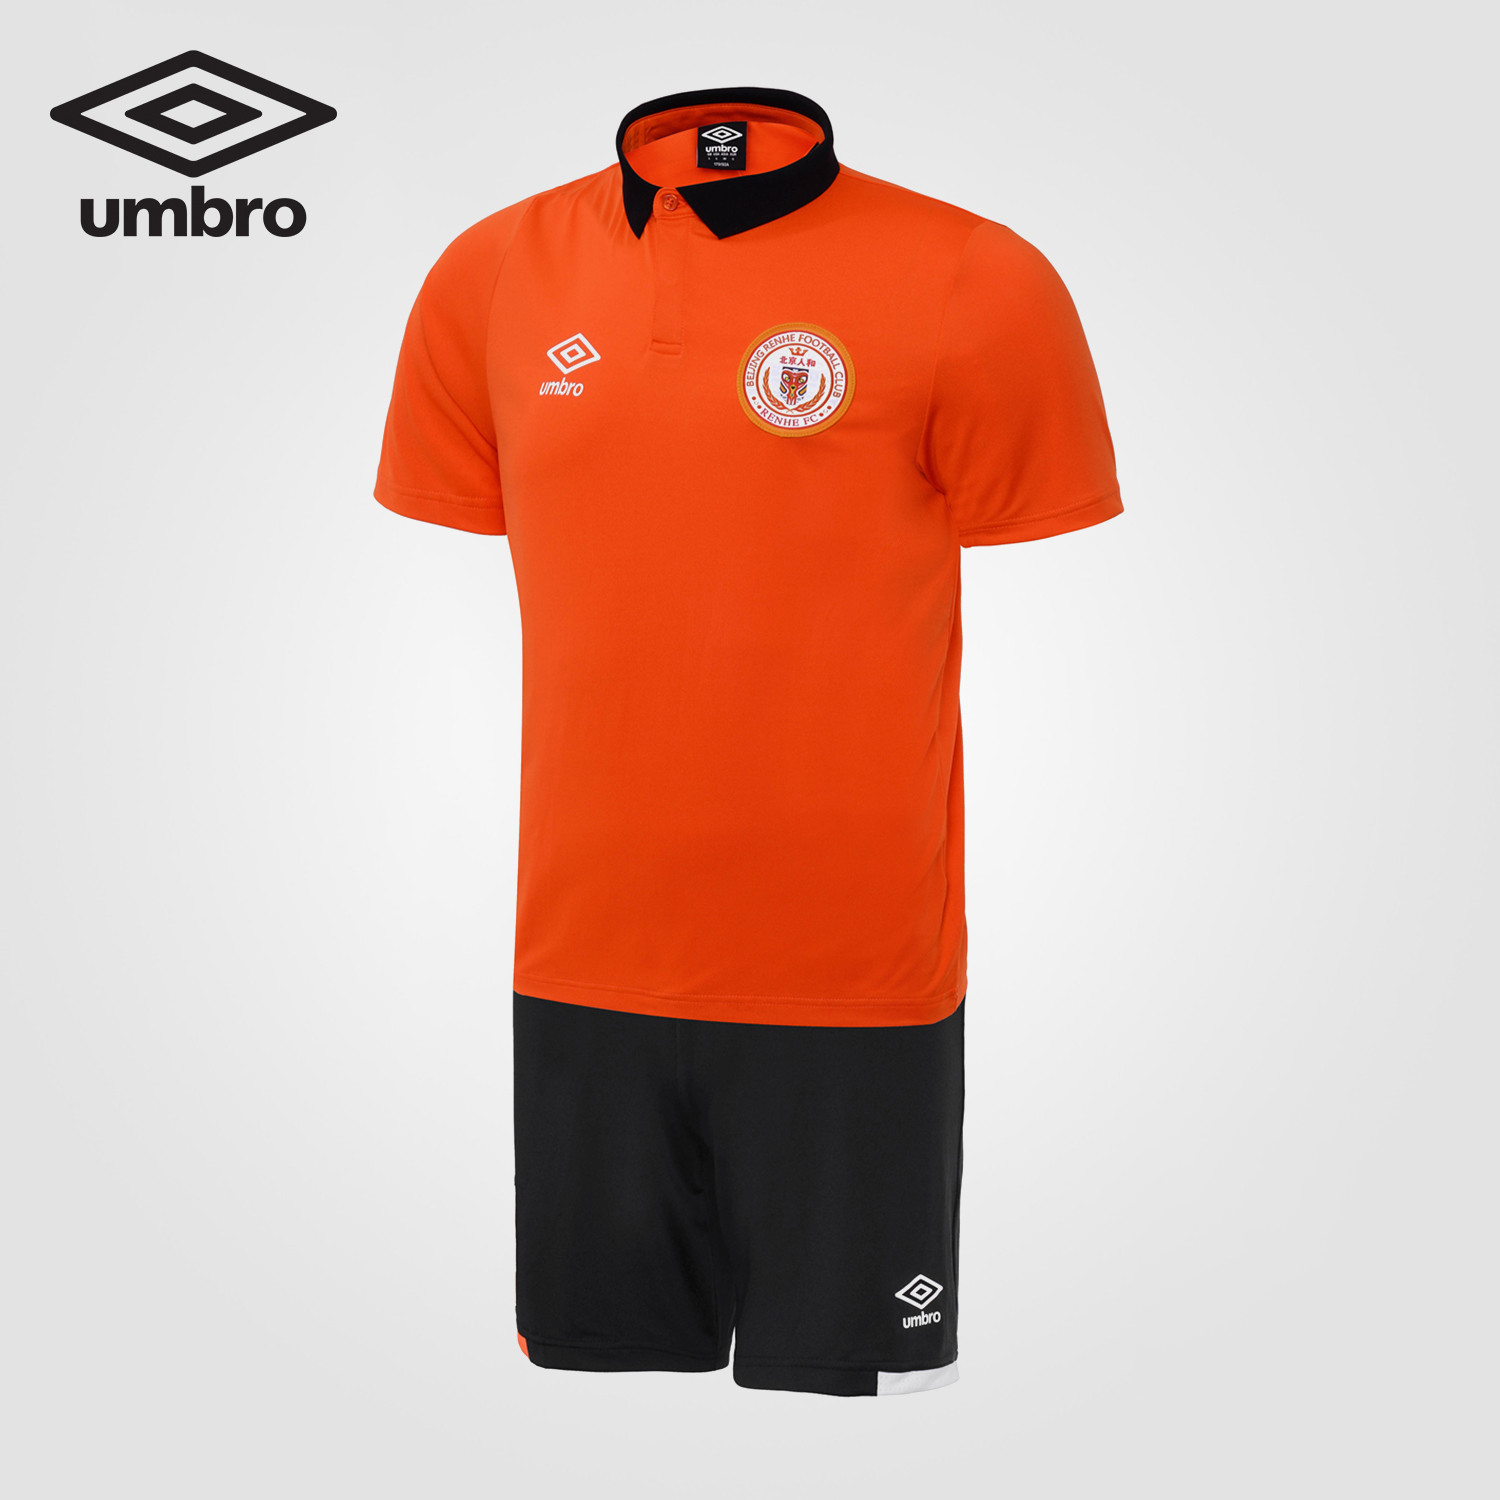 a1d42eef3c5 Umbro Men Football Suit Breathable Quick Dry Sportswear UZC63655. US   33.87. Jerseys Soccer 2019 Survement Football Kit Men Sports ...